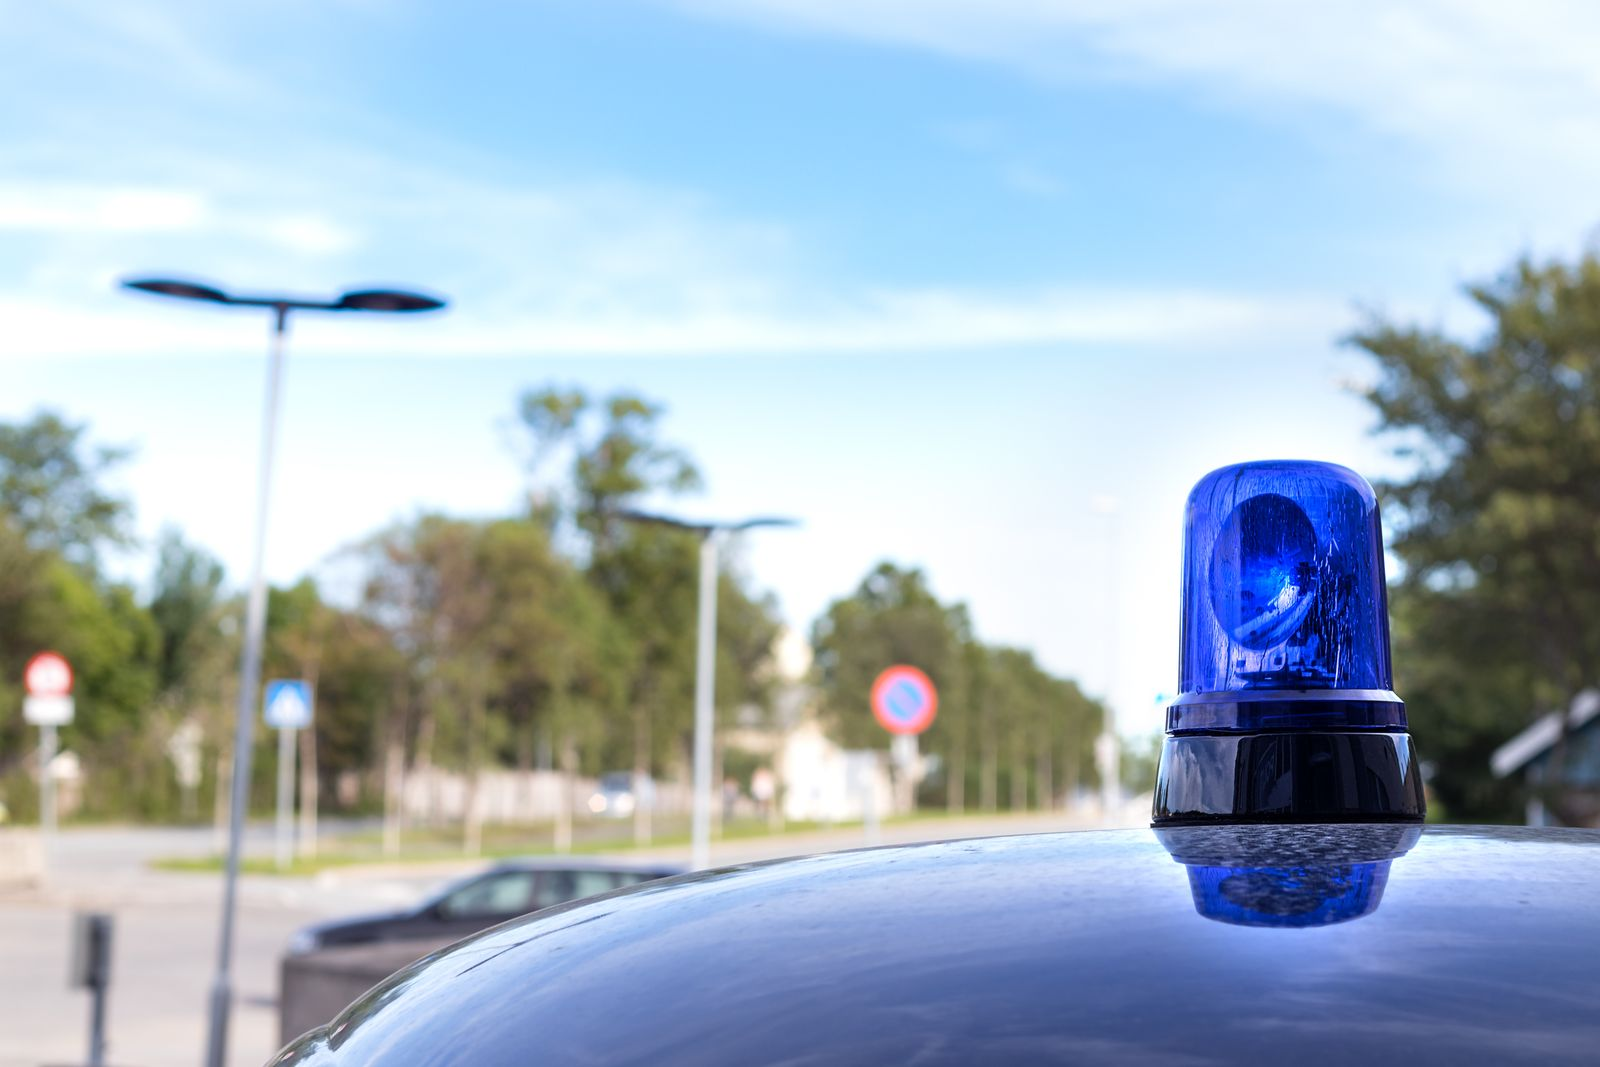 Closeup of vintage blue roof light siren of a police car in Norway.